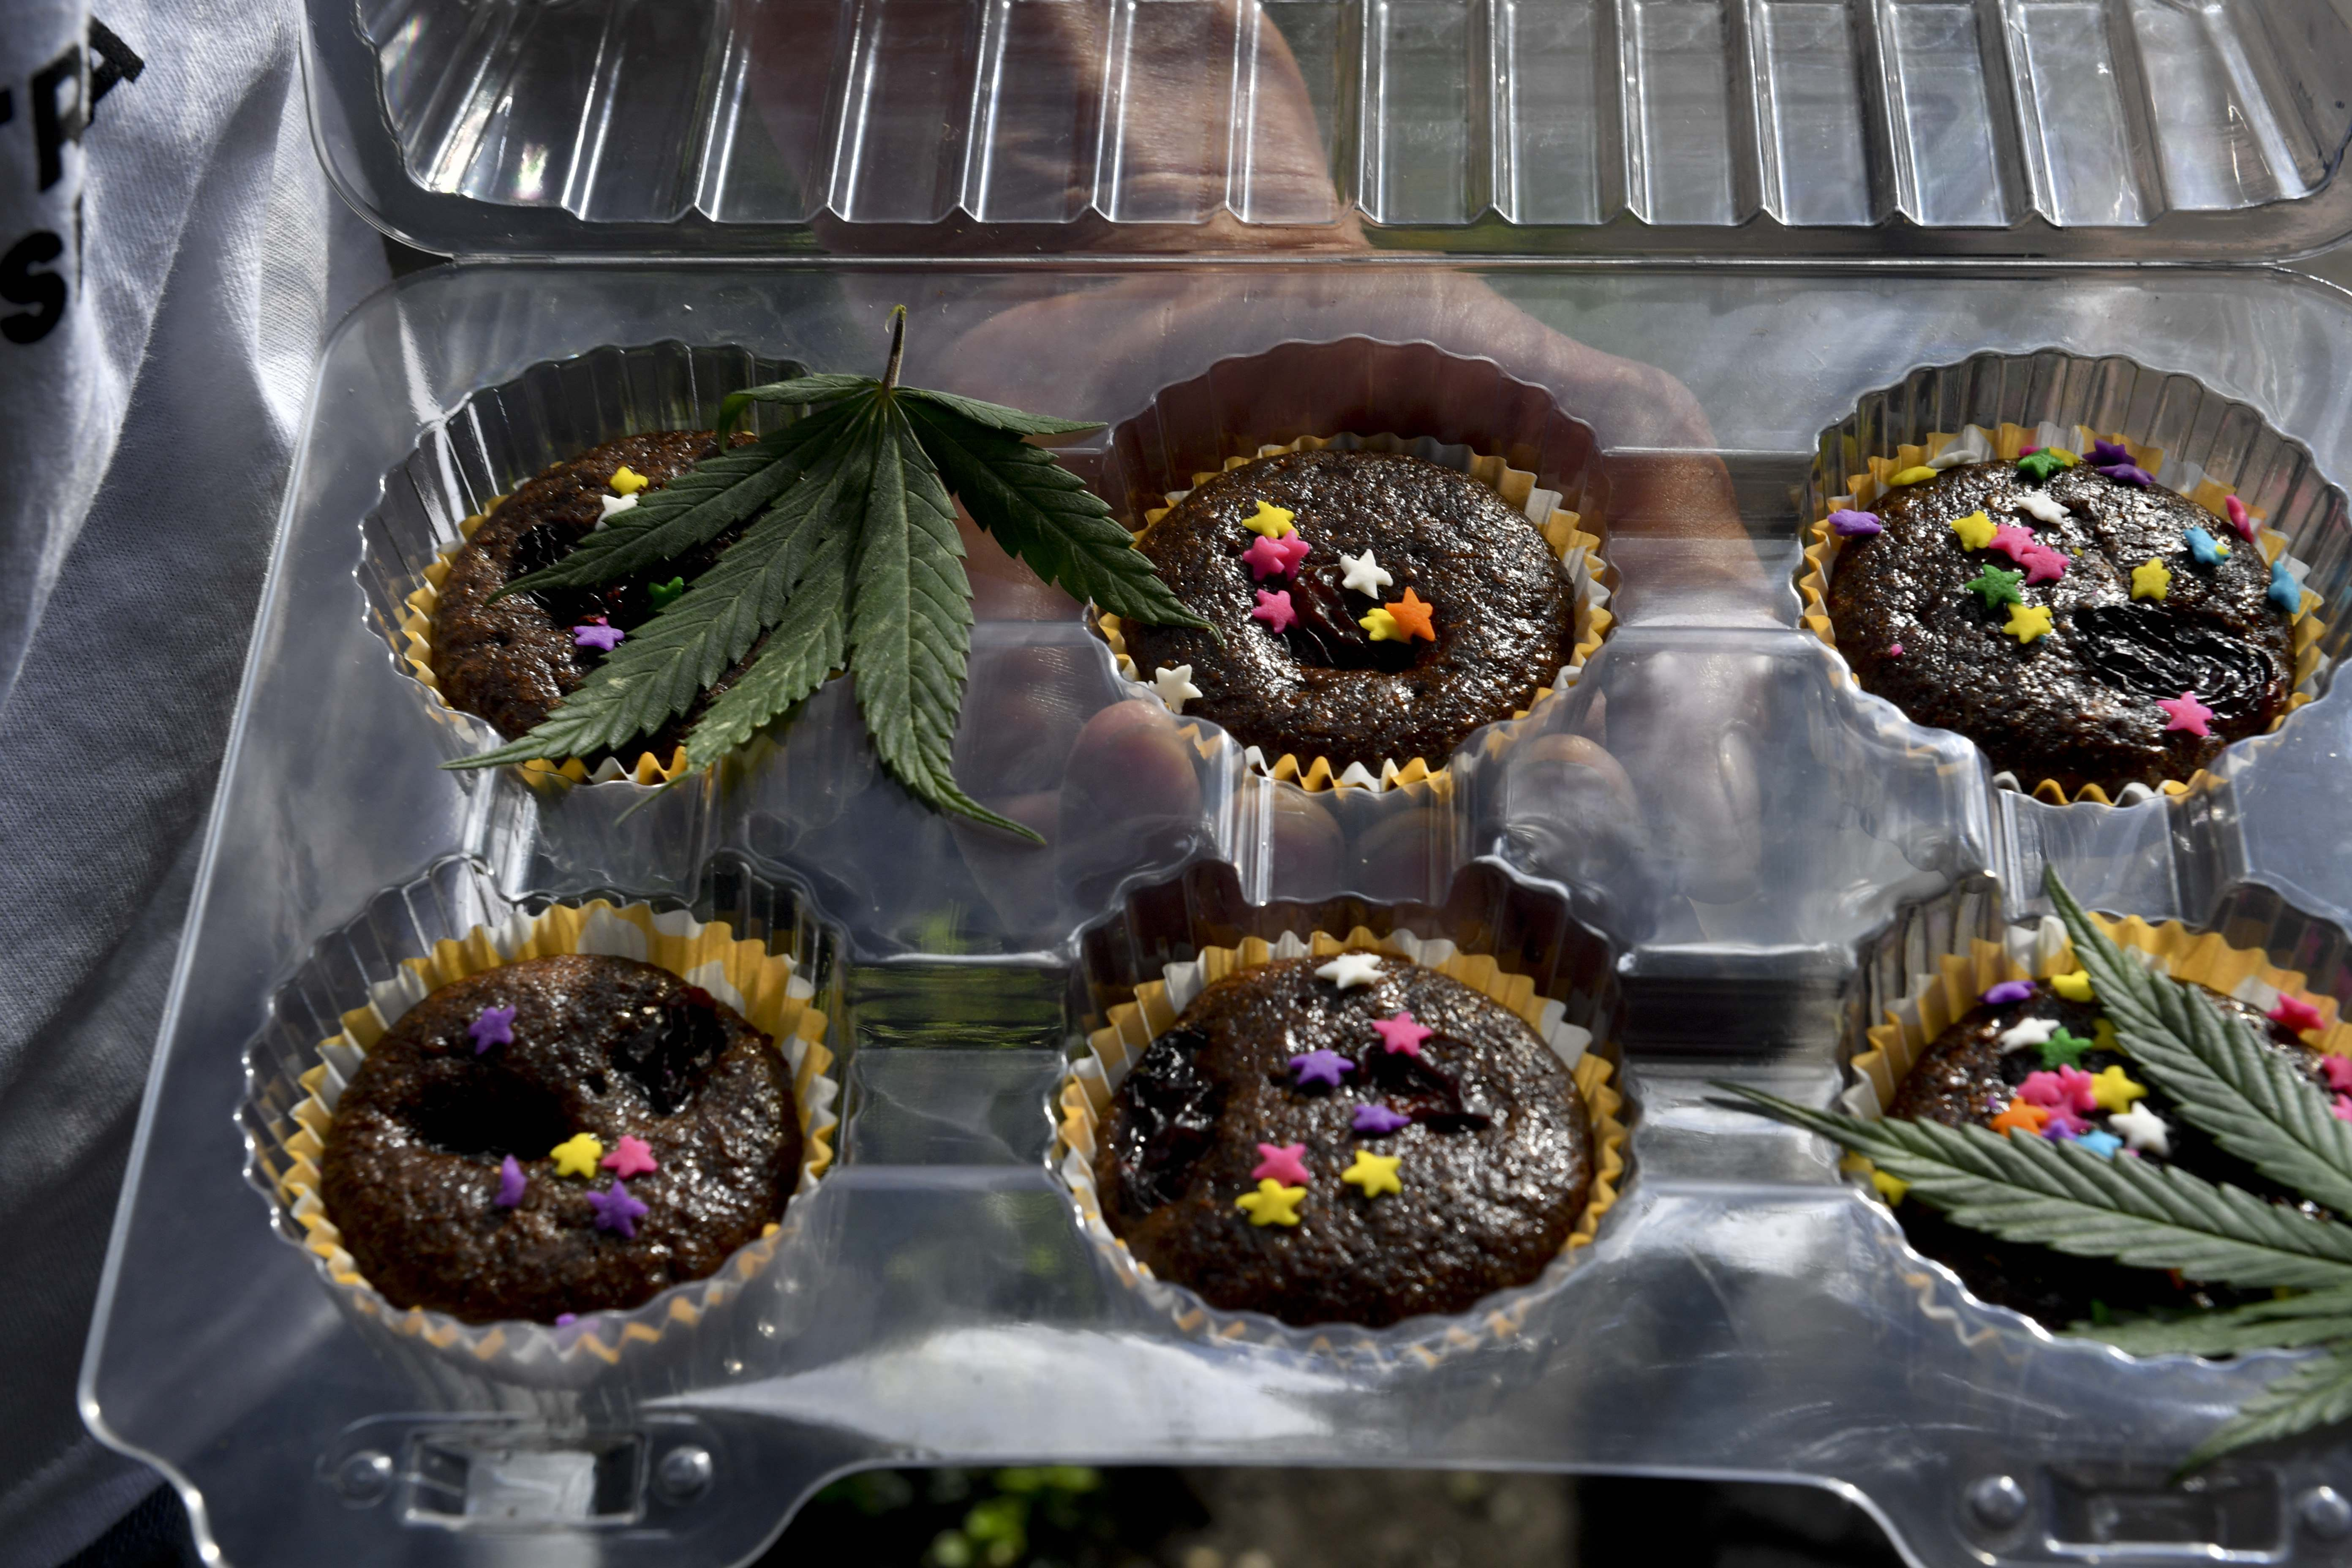 Edibles come in a variety of forms.